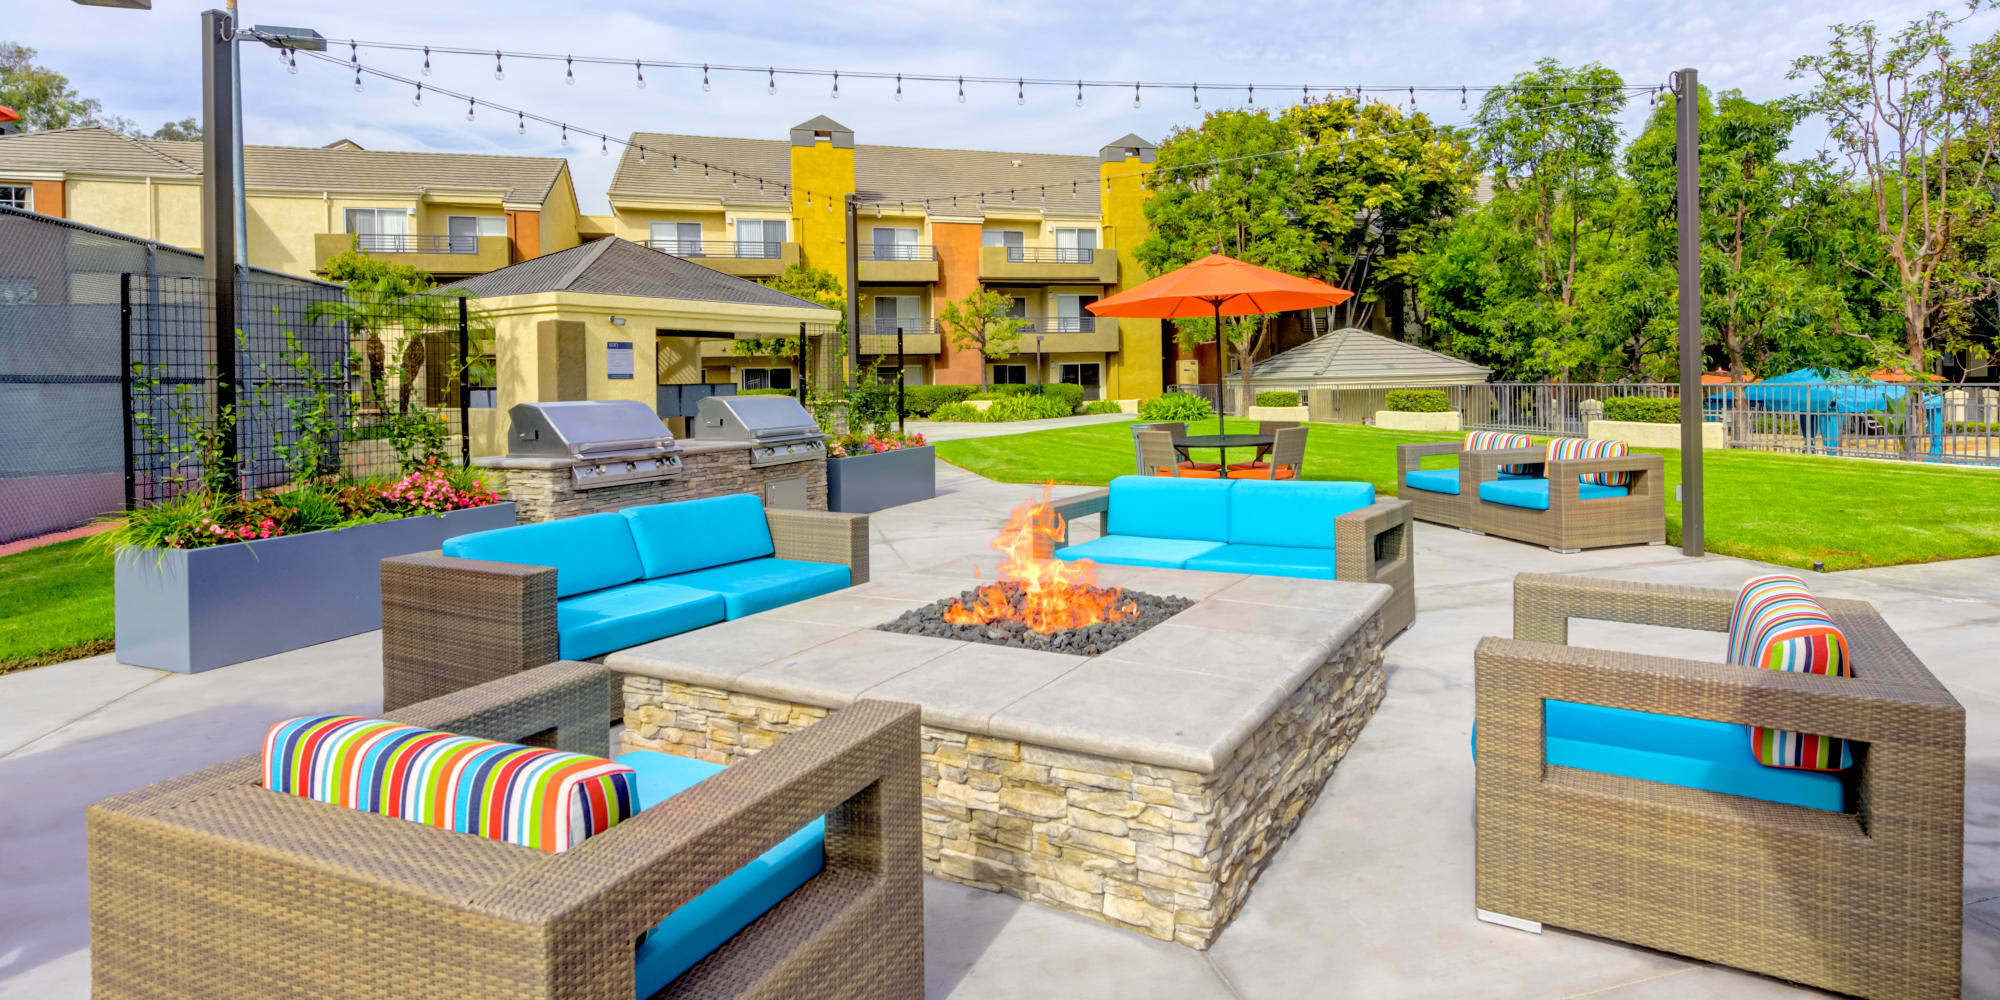 Apartments at Sofi Irvine in Irvine, California